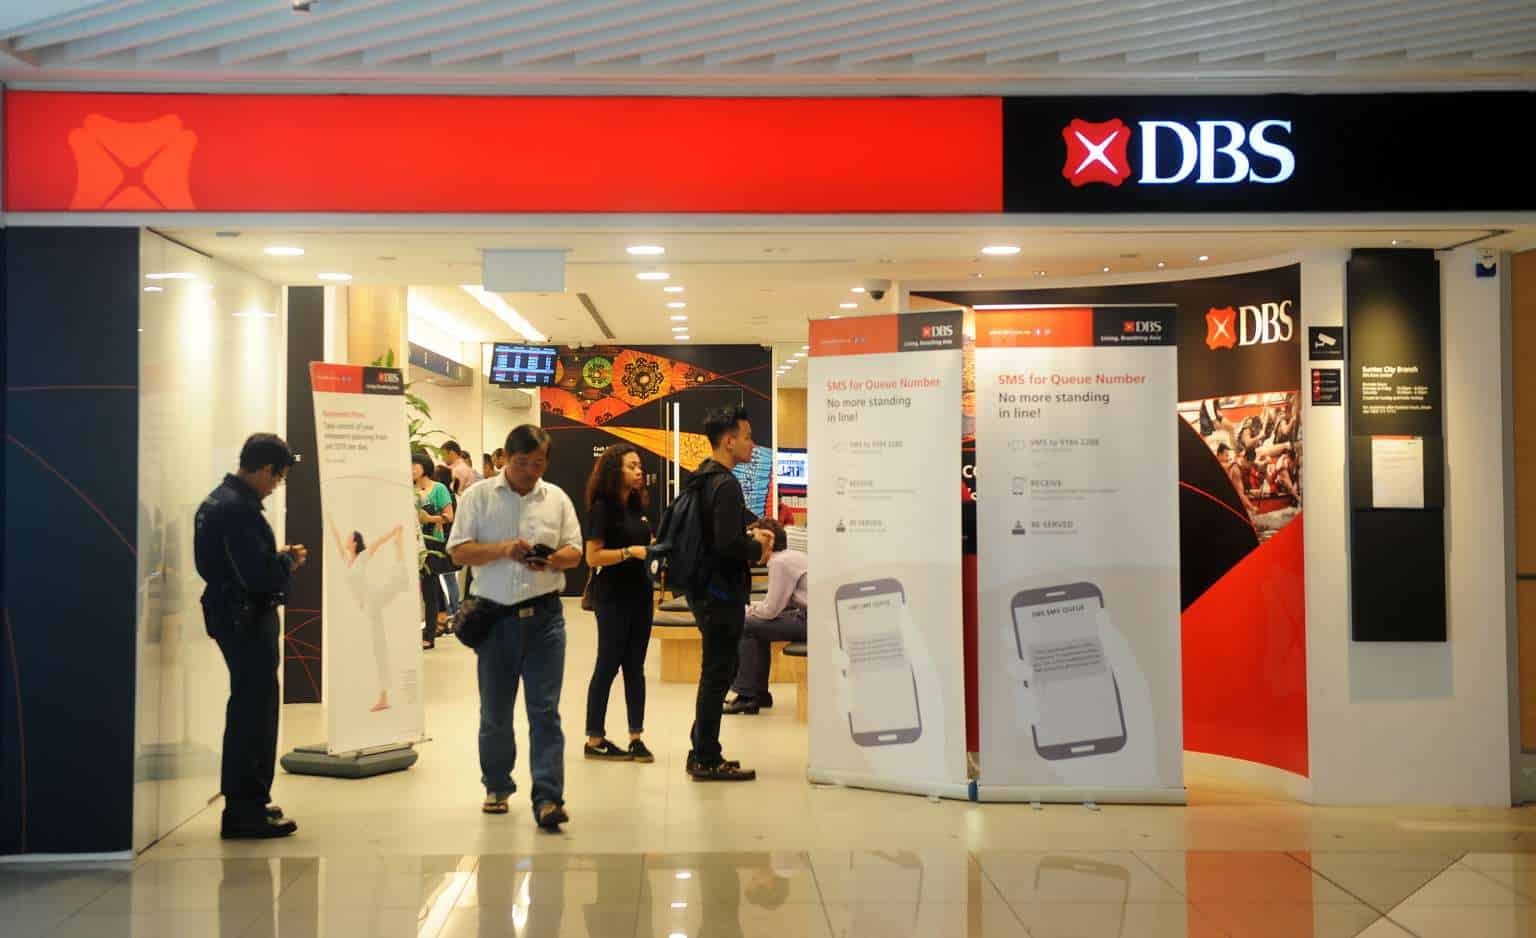 dbs branches